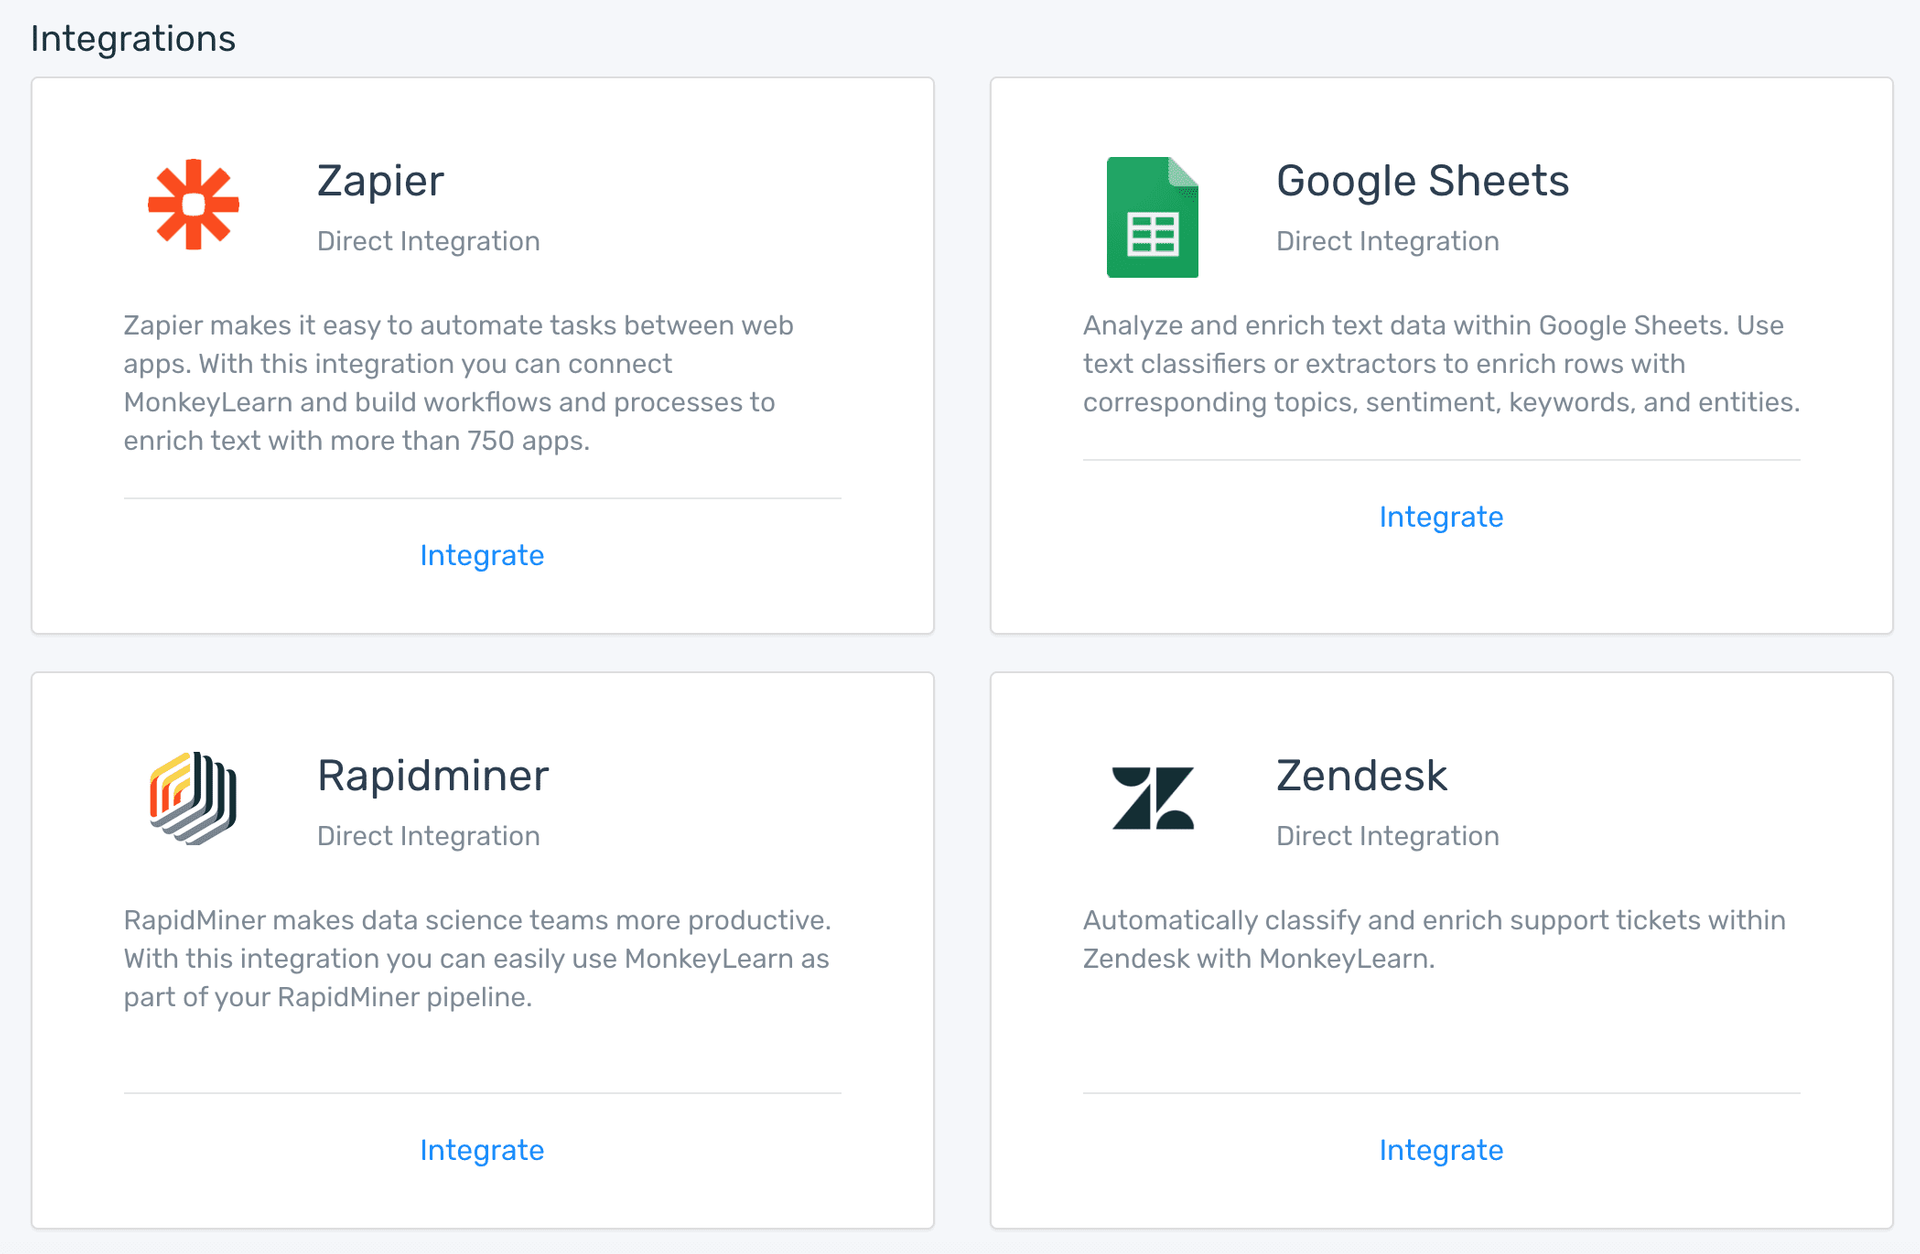 available integrations: Zapier, Rapidminer, Google Sheets, Zendesk